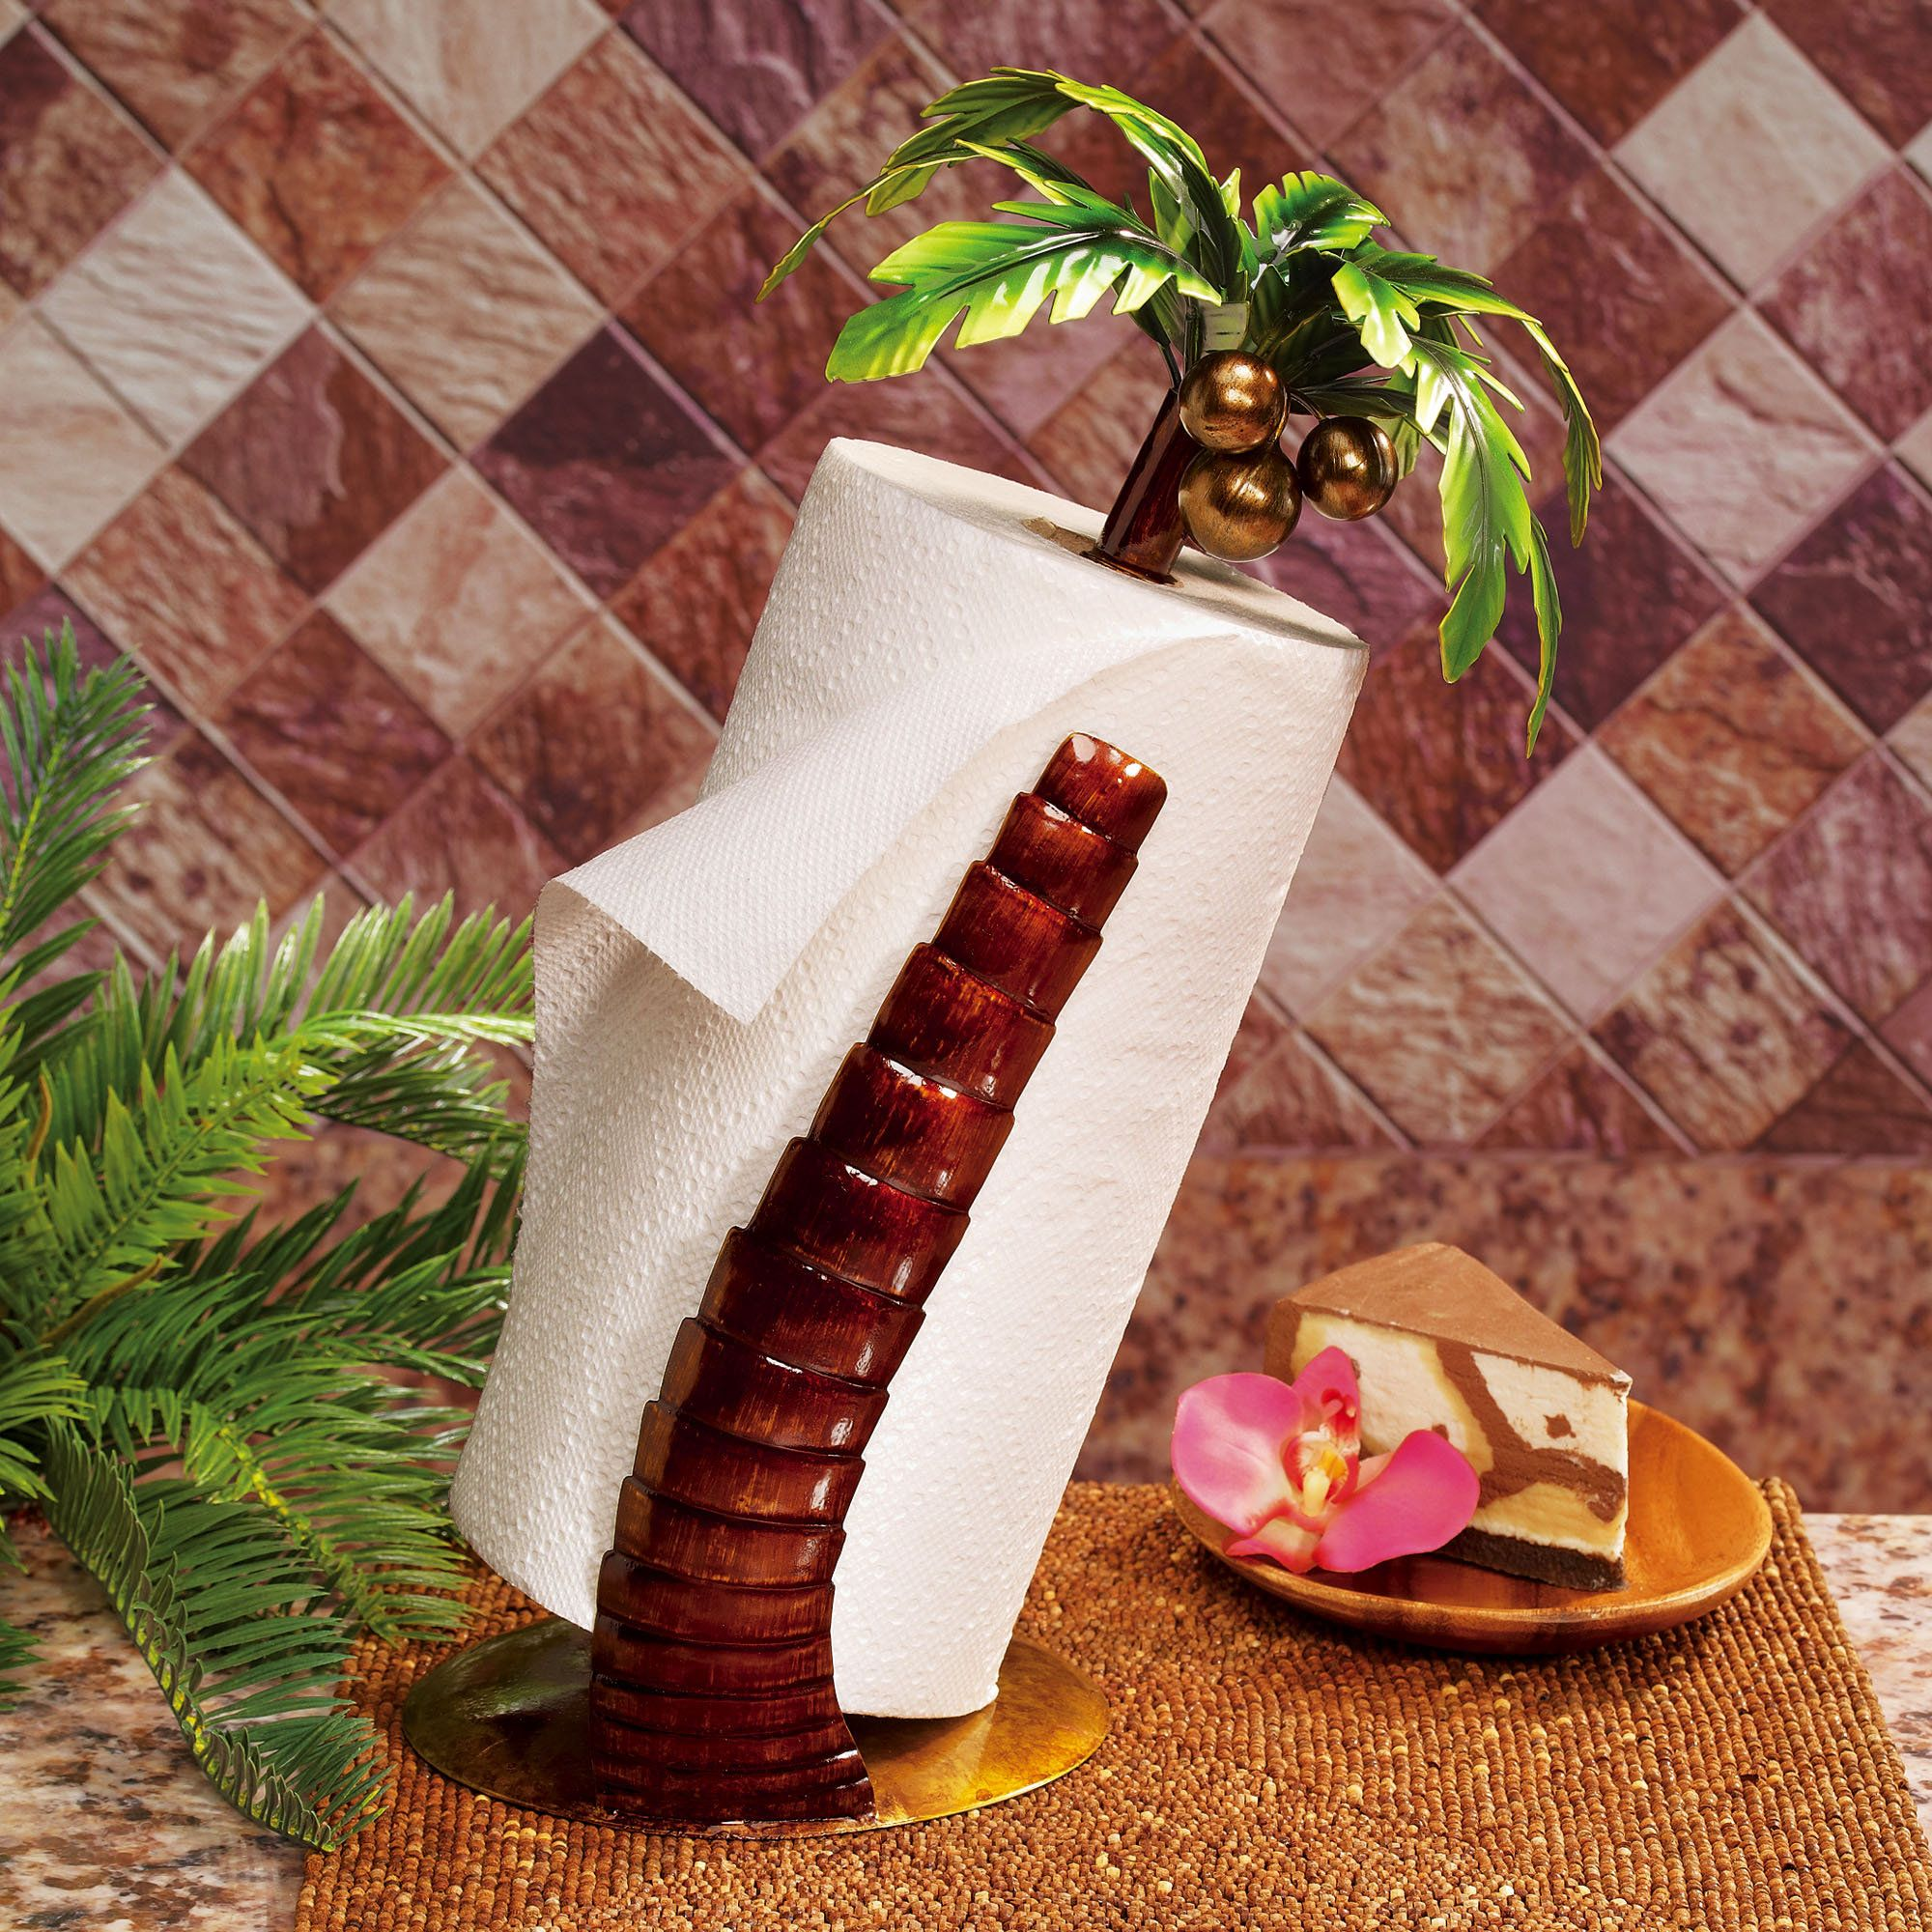 Curved Palm Tree Paper Towel Holder